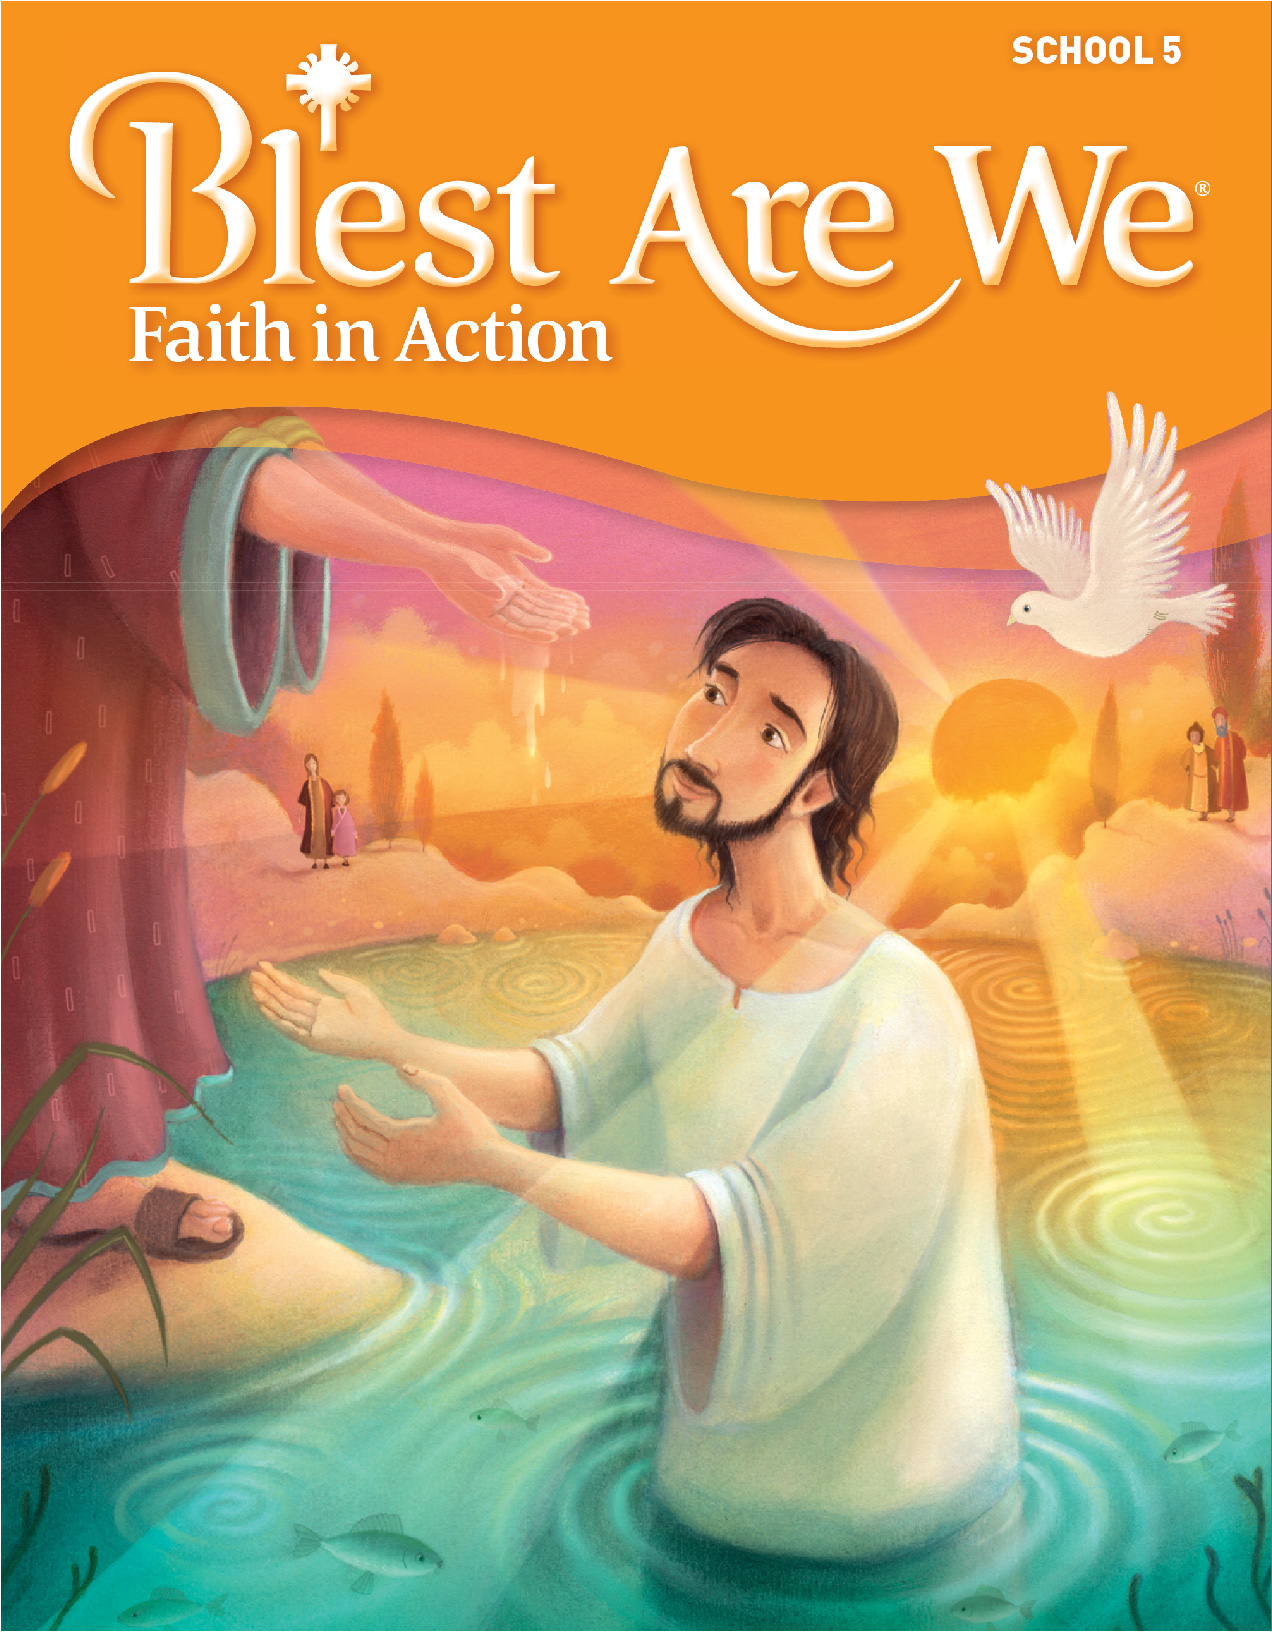 Book cover of Blest Are We, Faith in Action, School 5, with a man in water and his hands reaching for another set of hands